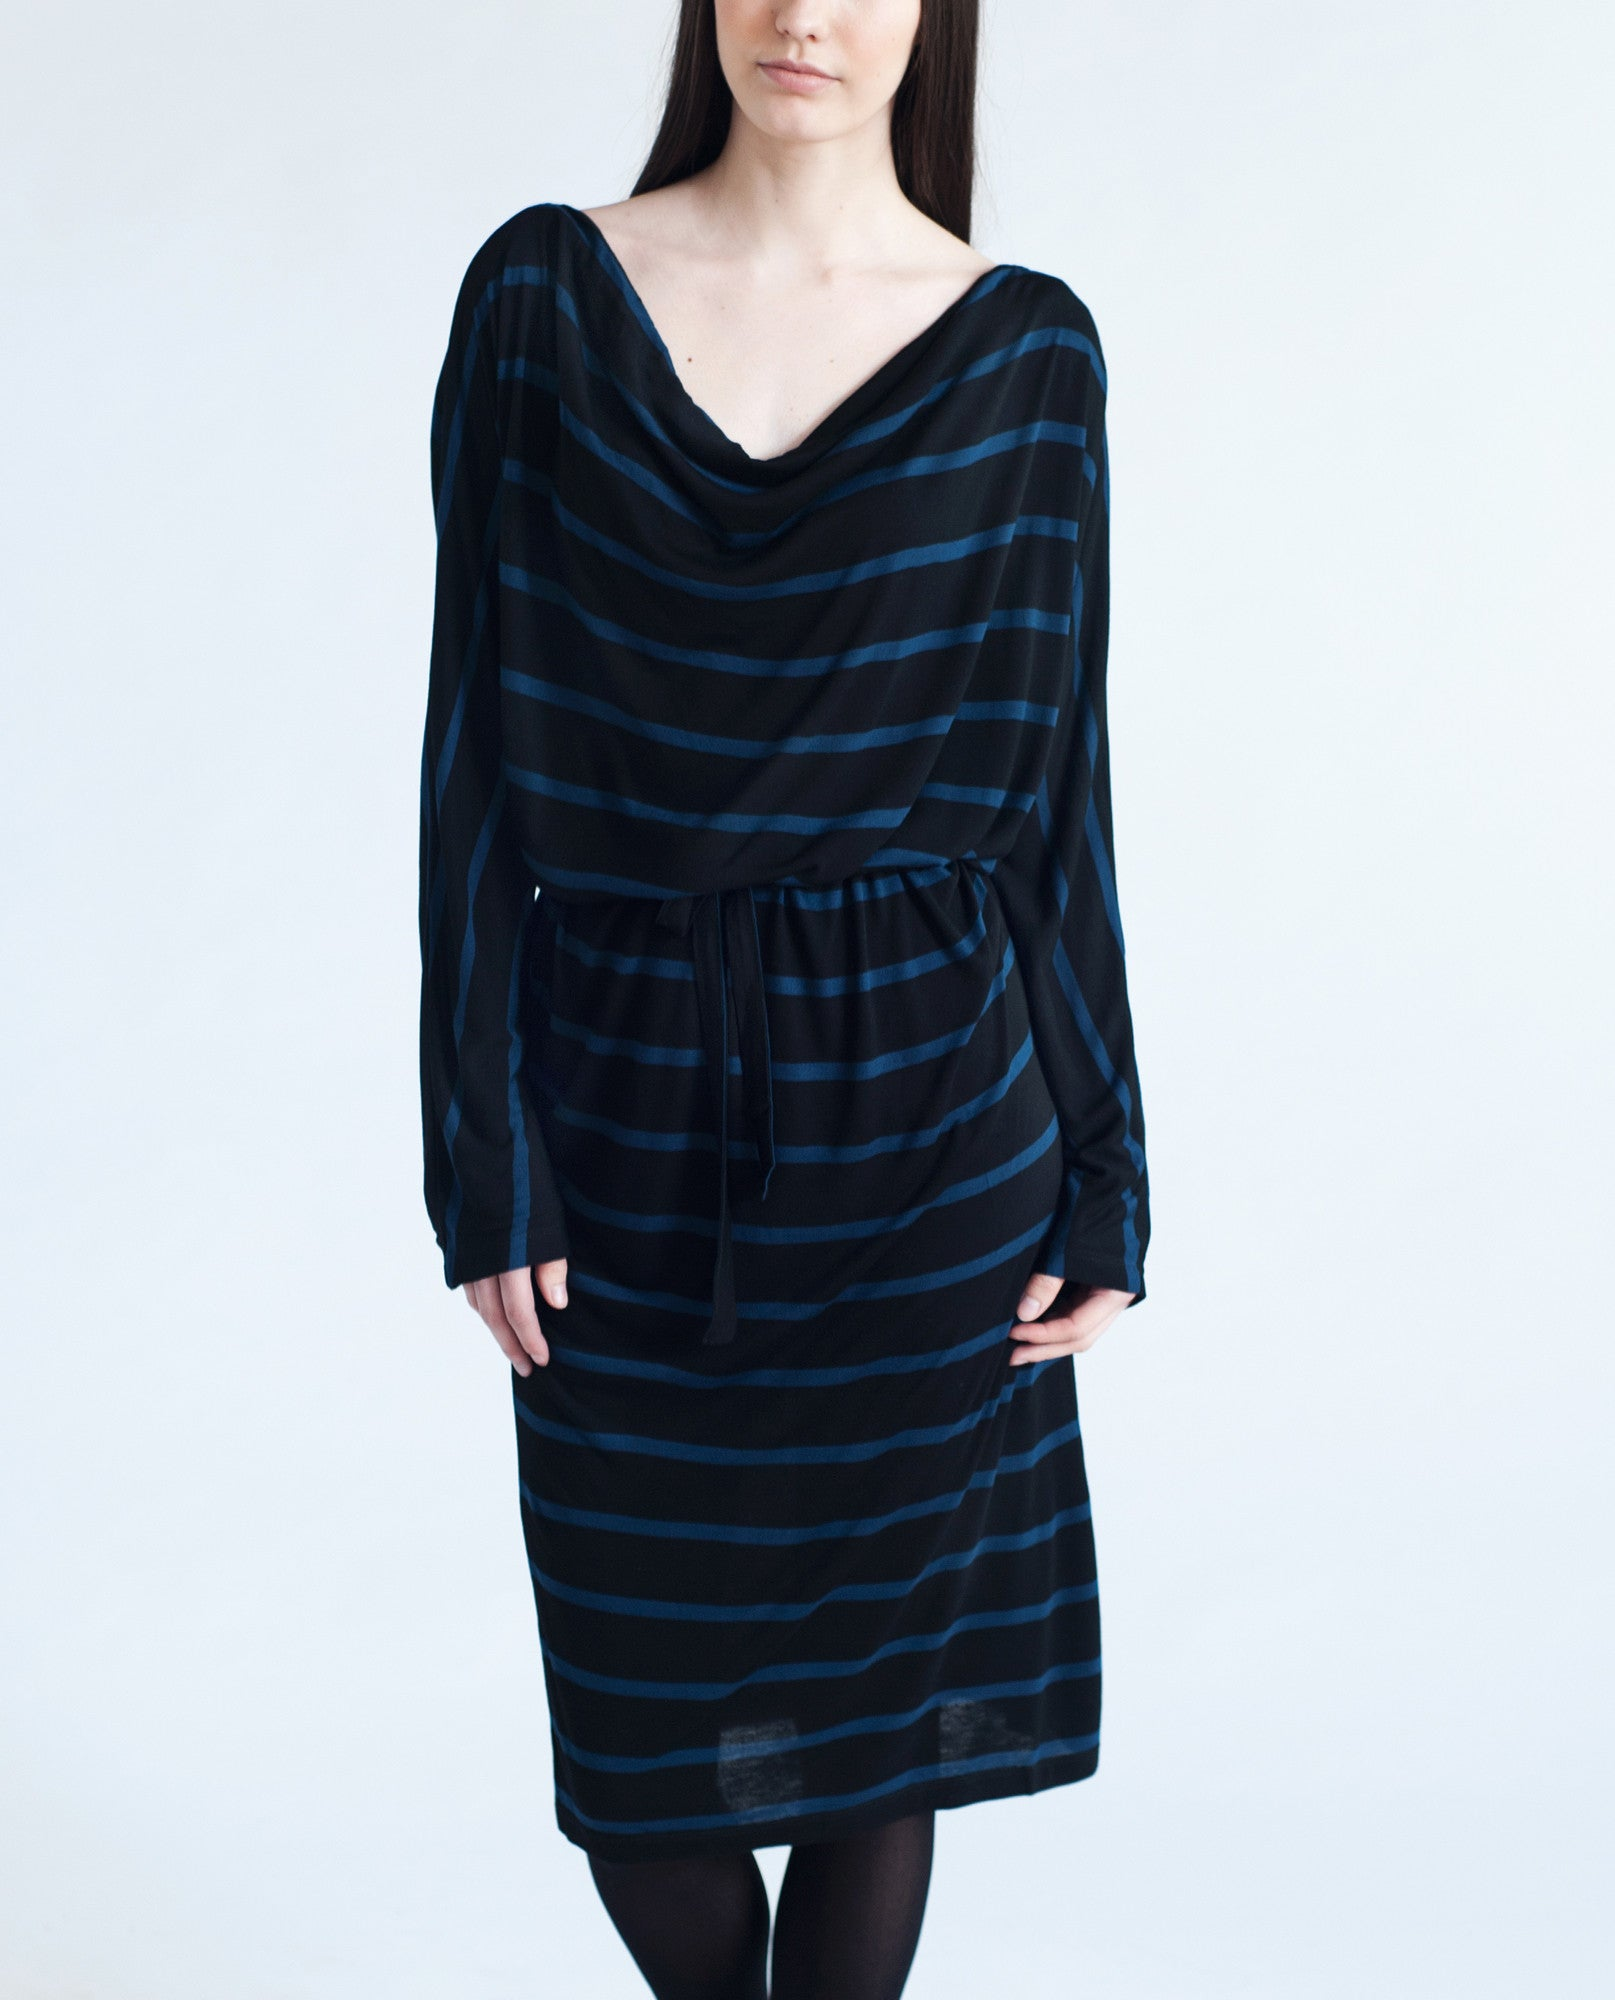 LEONA Bamboo Striped Dress from Beaumont Organic